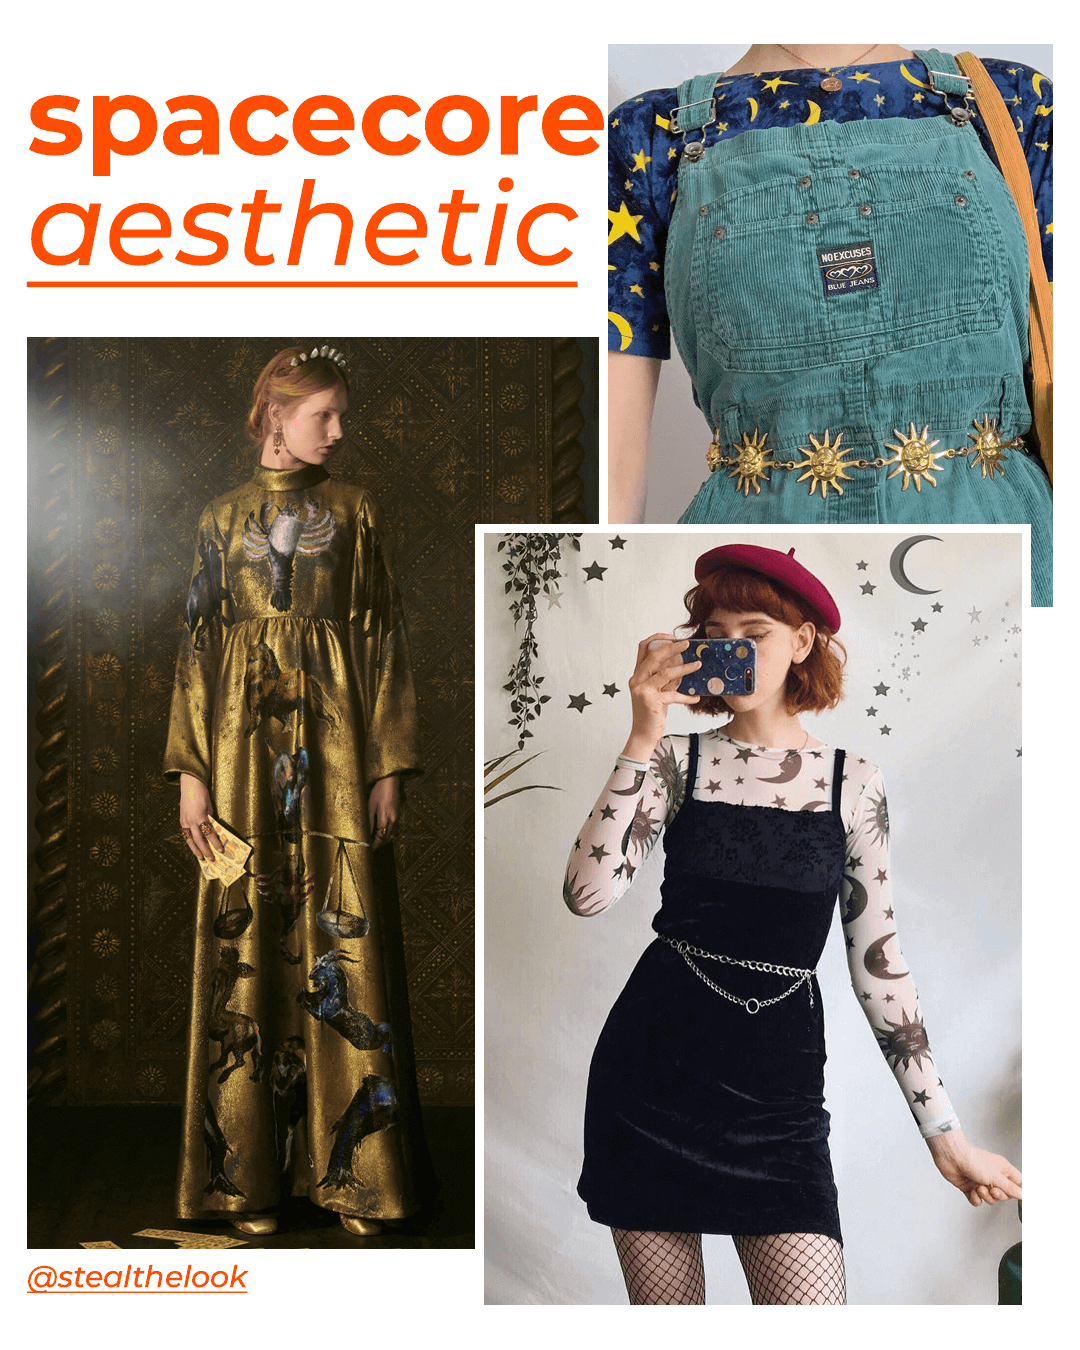 Christian Dior, Liberty Mai - tendências core aesthetic - kidcore cottagecore witchcore  - outono - street style - https://stealthelook.com.br